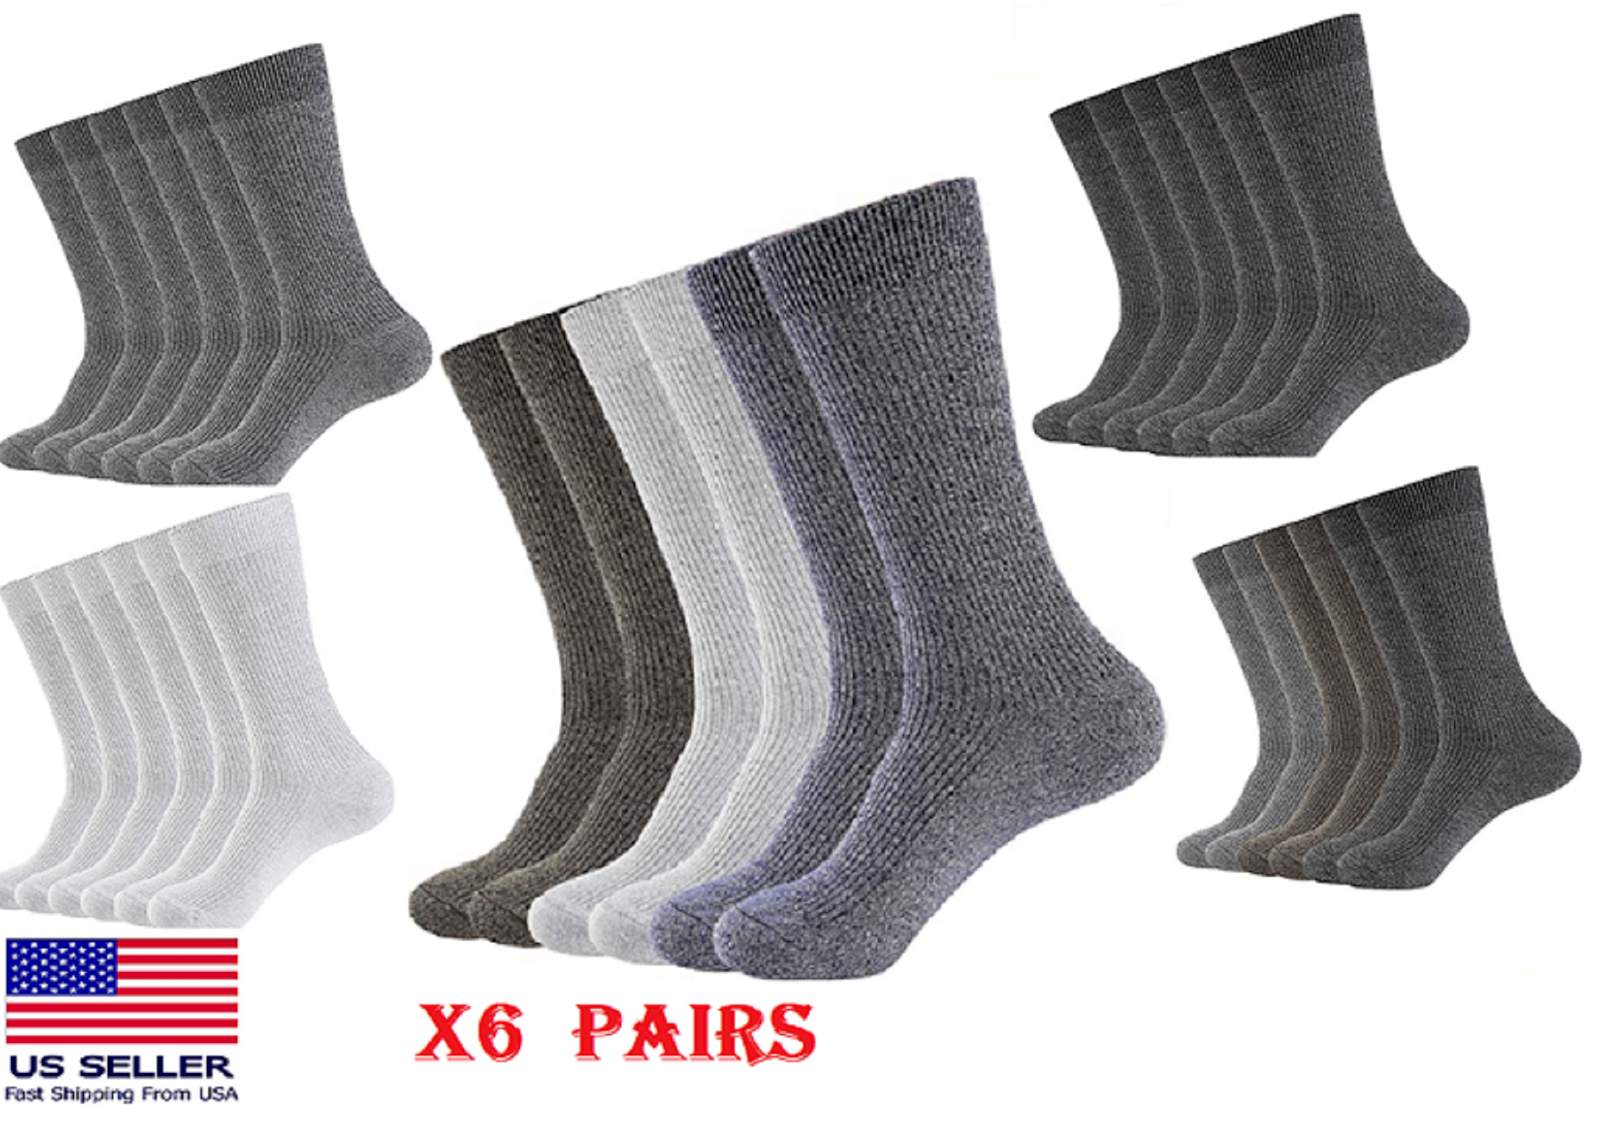 WANDER 6 PAIRS Men Crew Socks Moisture Breathable HIGH QUALITY Everyday Socks X6 Clothing, Shoes & Accessories